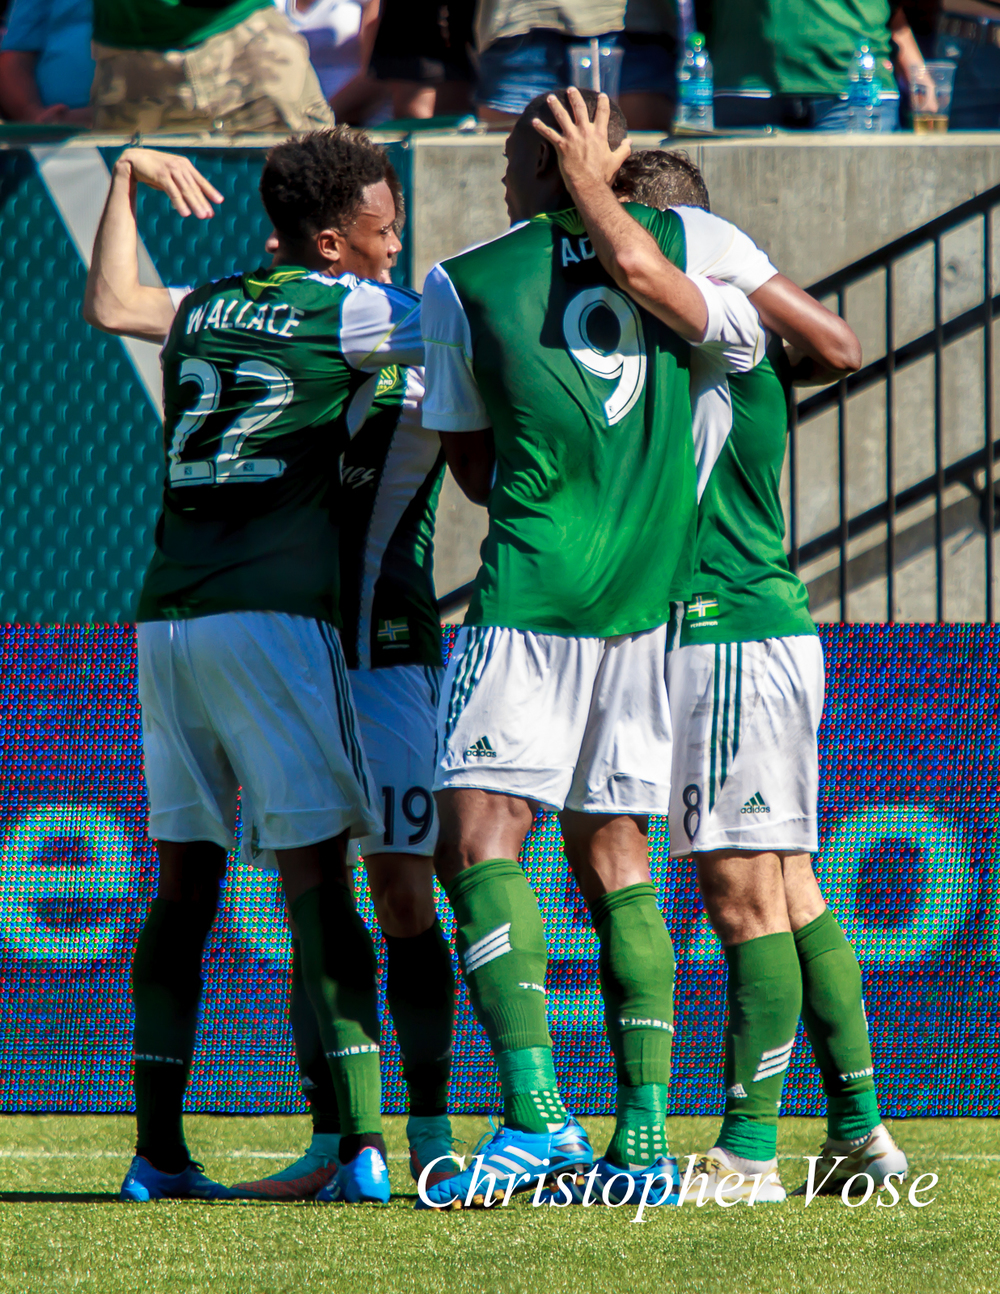 2014-09-20 Diego Valeri Goal Celebration.jpg